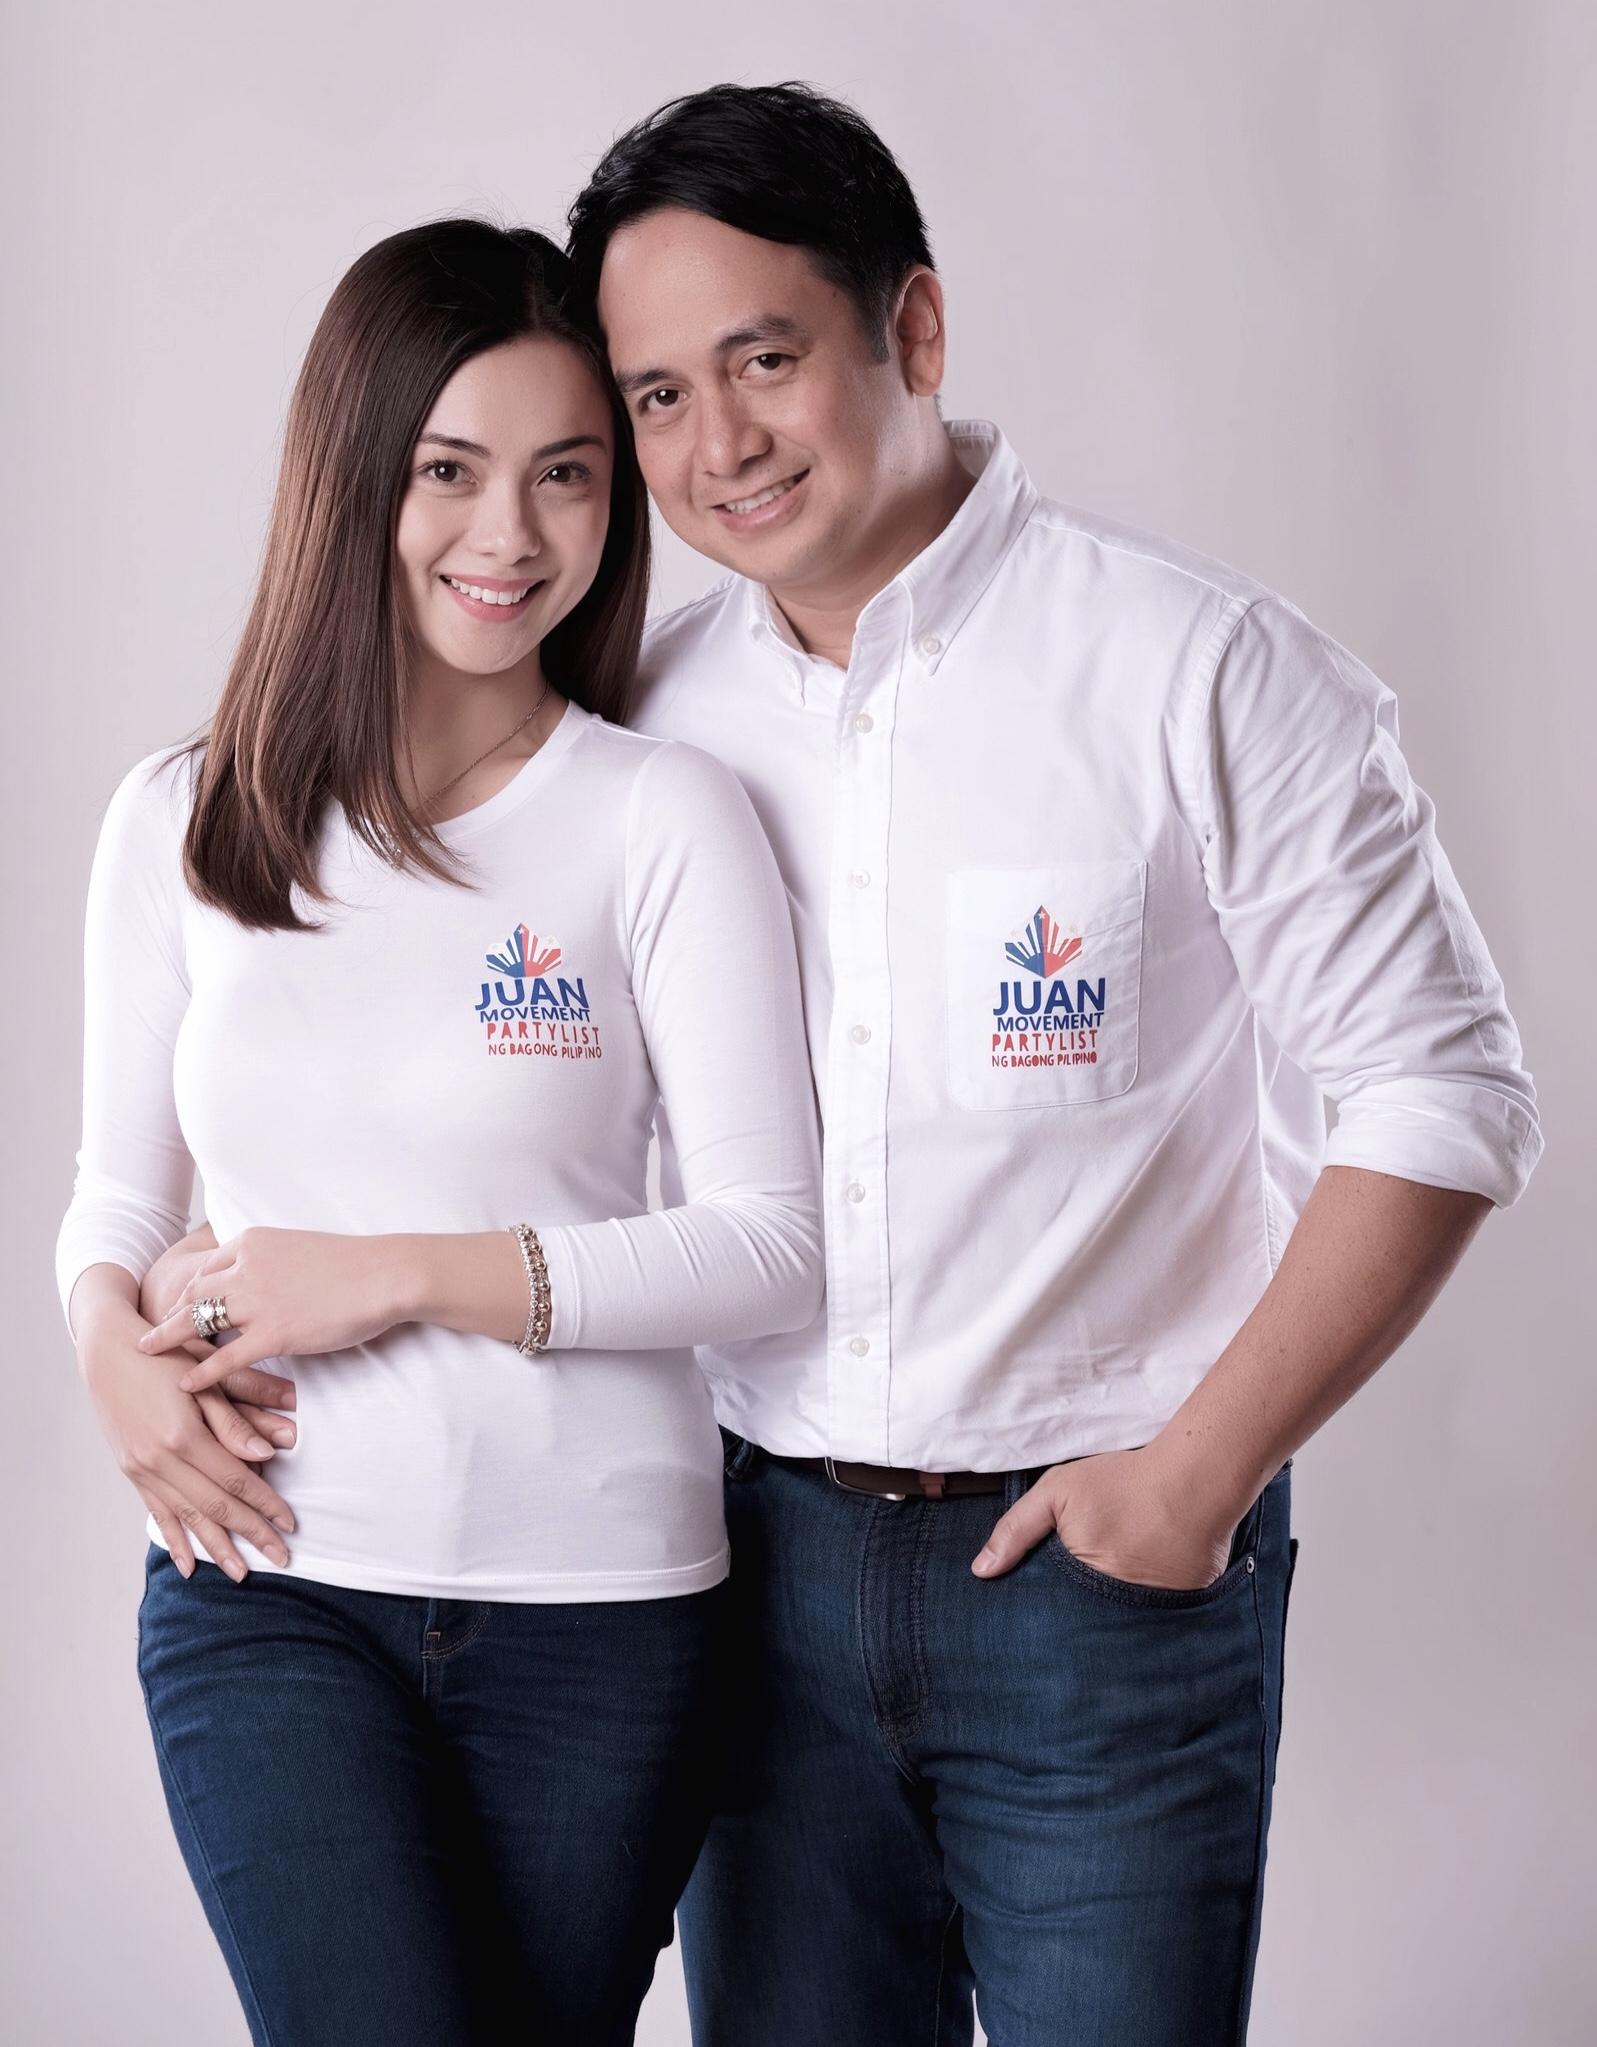 Nico and Zyrene Valencia have become closer to Arnell Ignacio who pledges to support the couple's advocaies through Juan Movement PartyList ng Bagong Piliipino